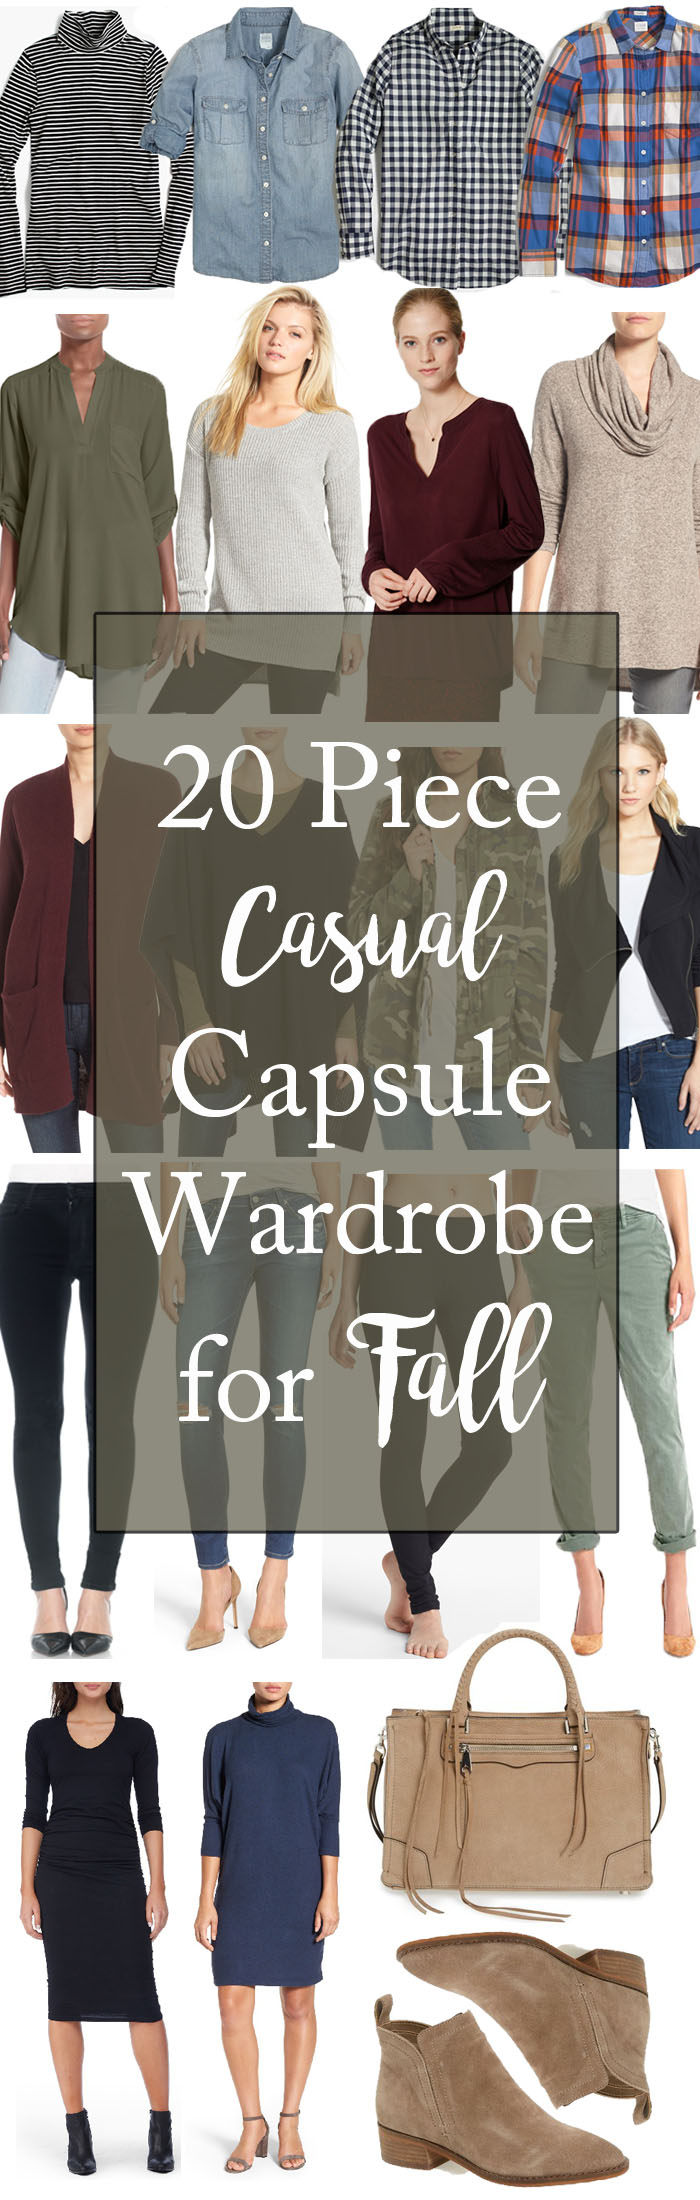 A 20 piece capsule wardrobe for Fall for busy moms on the go, complete with outfit suggestions and tips on how to wear each piece.